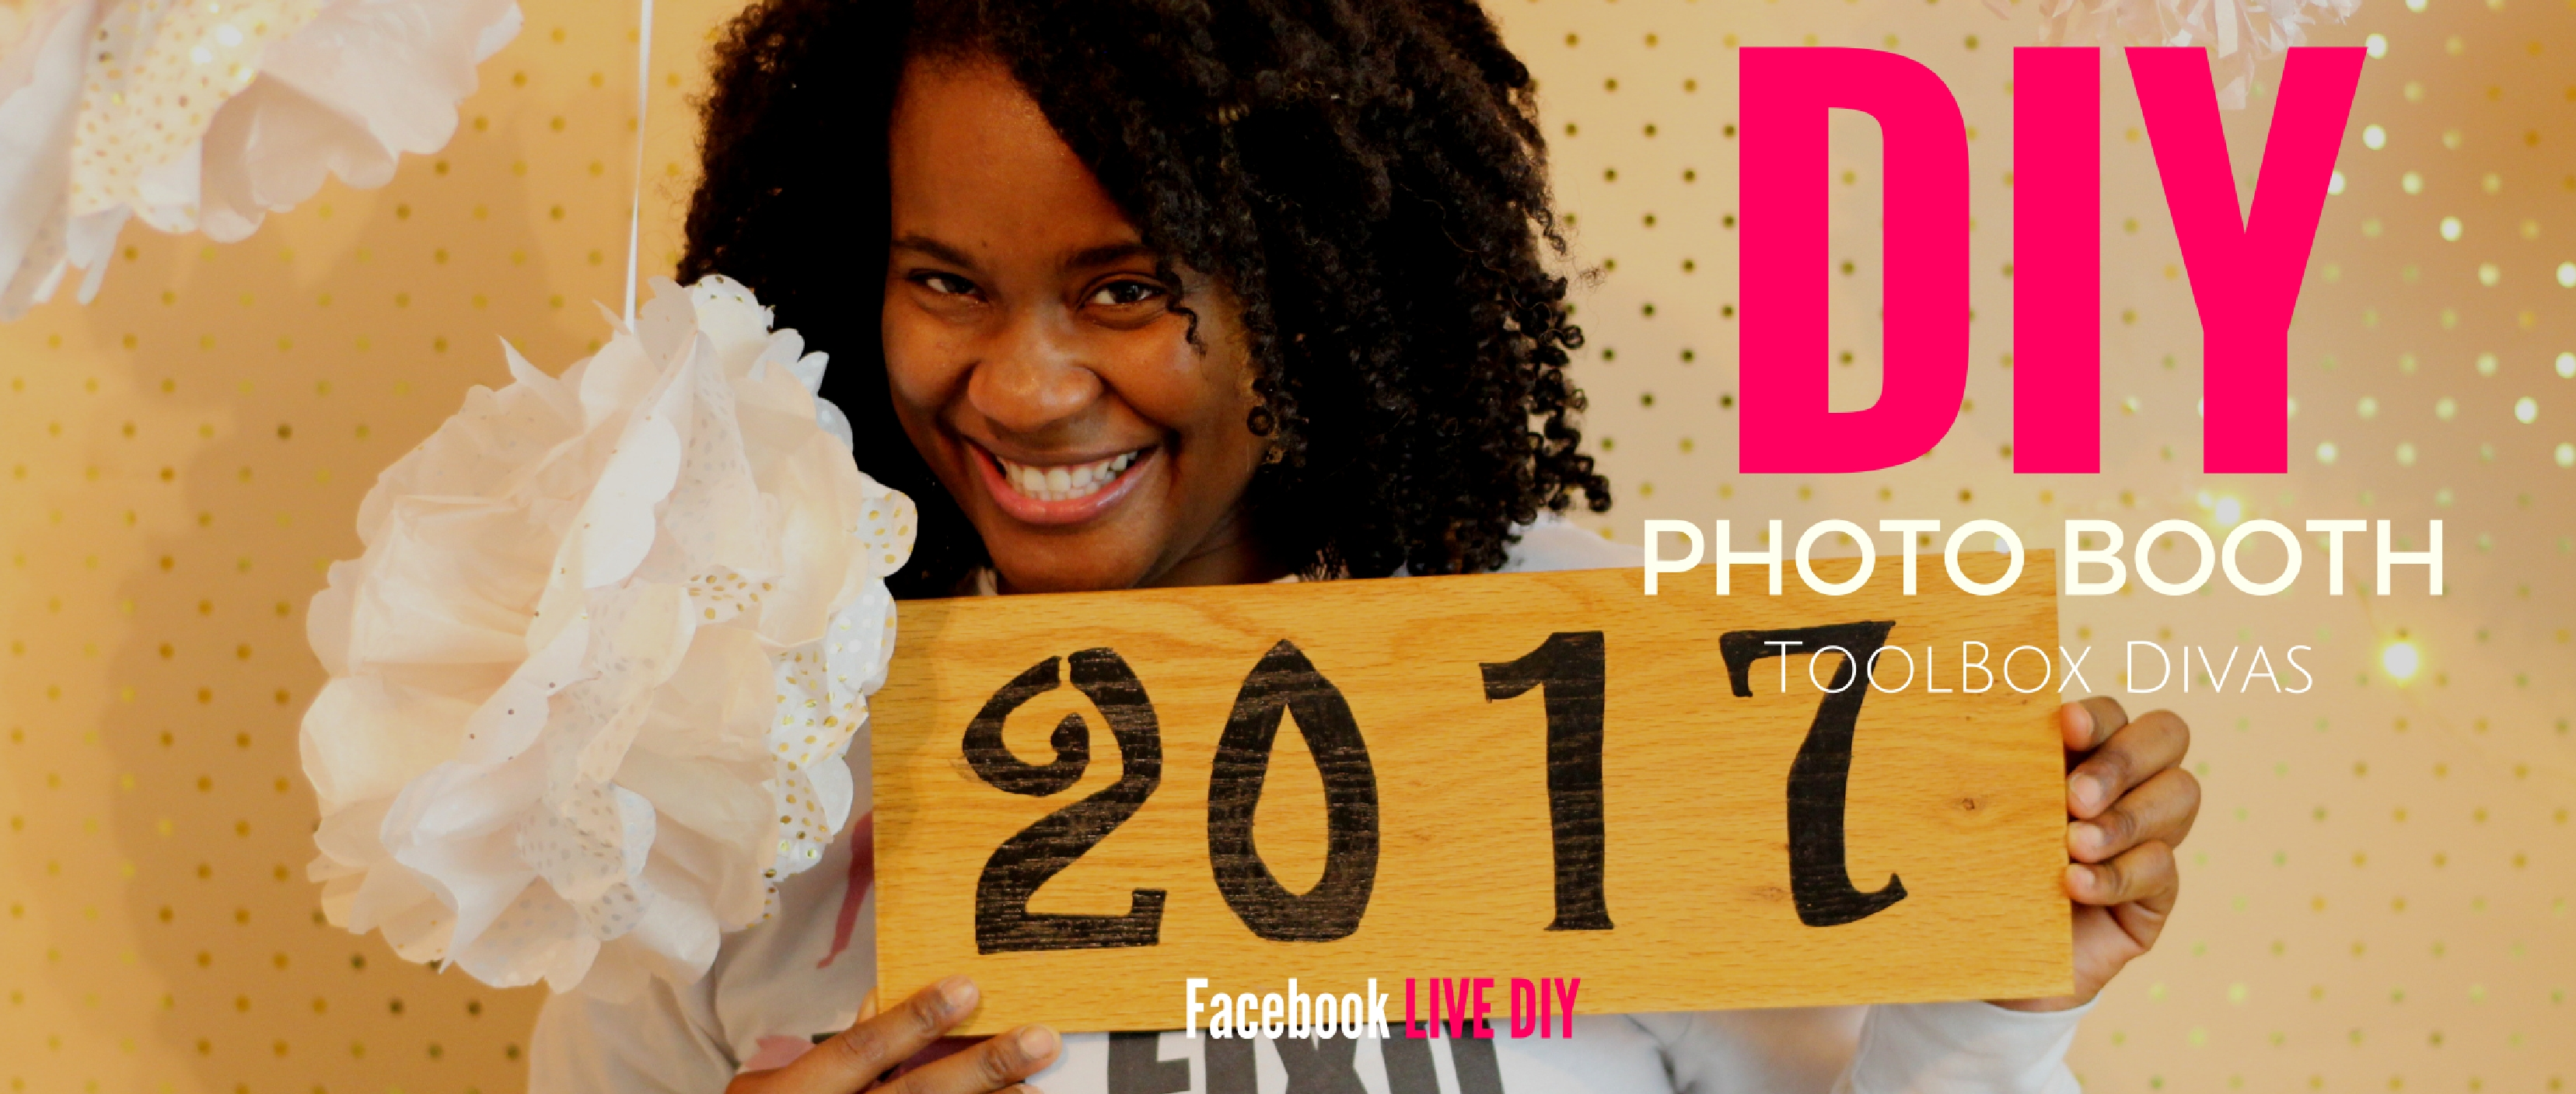 Set up the Perfect Photo Booth in minutes